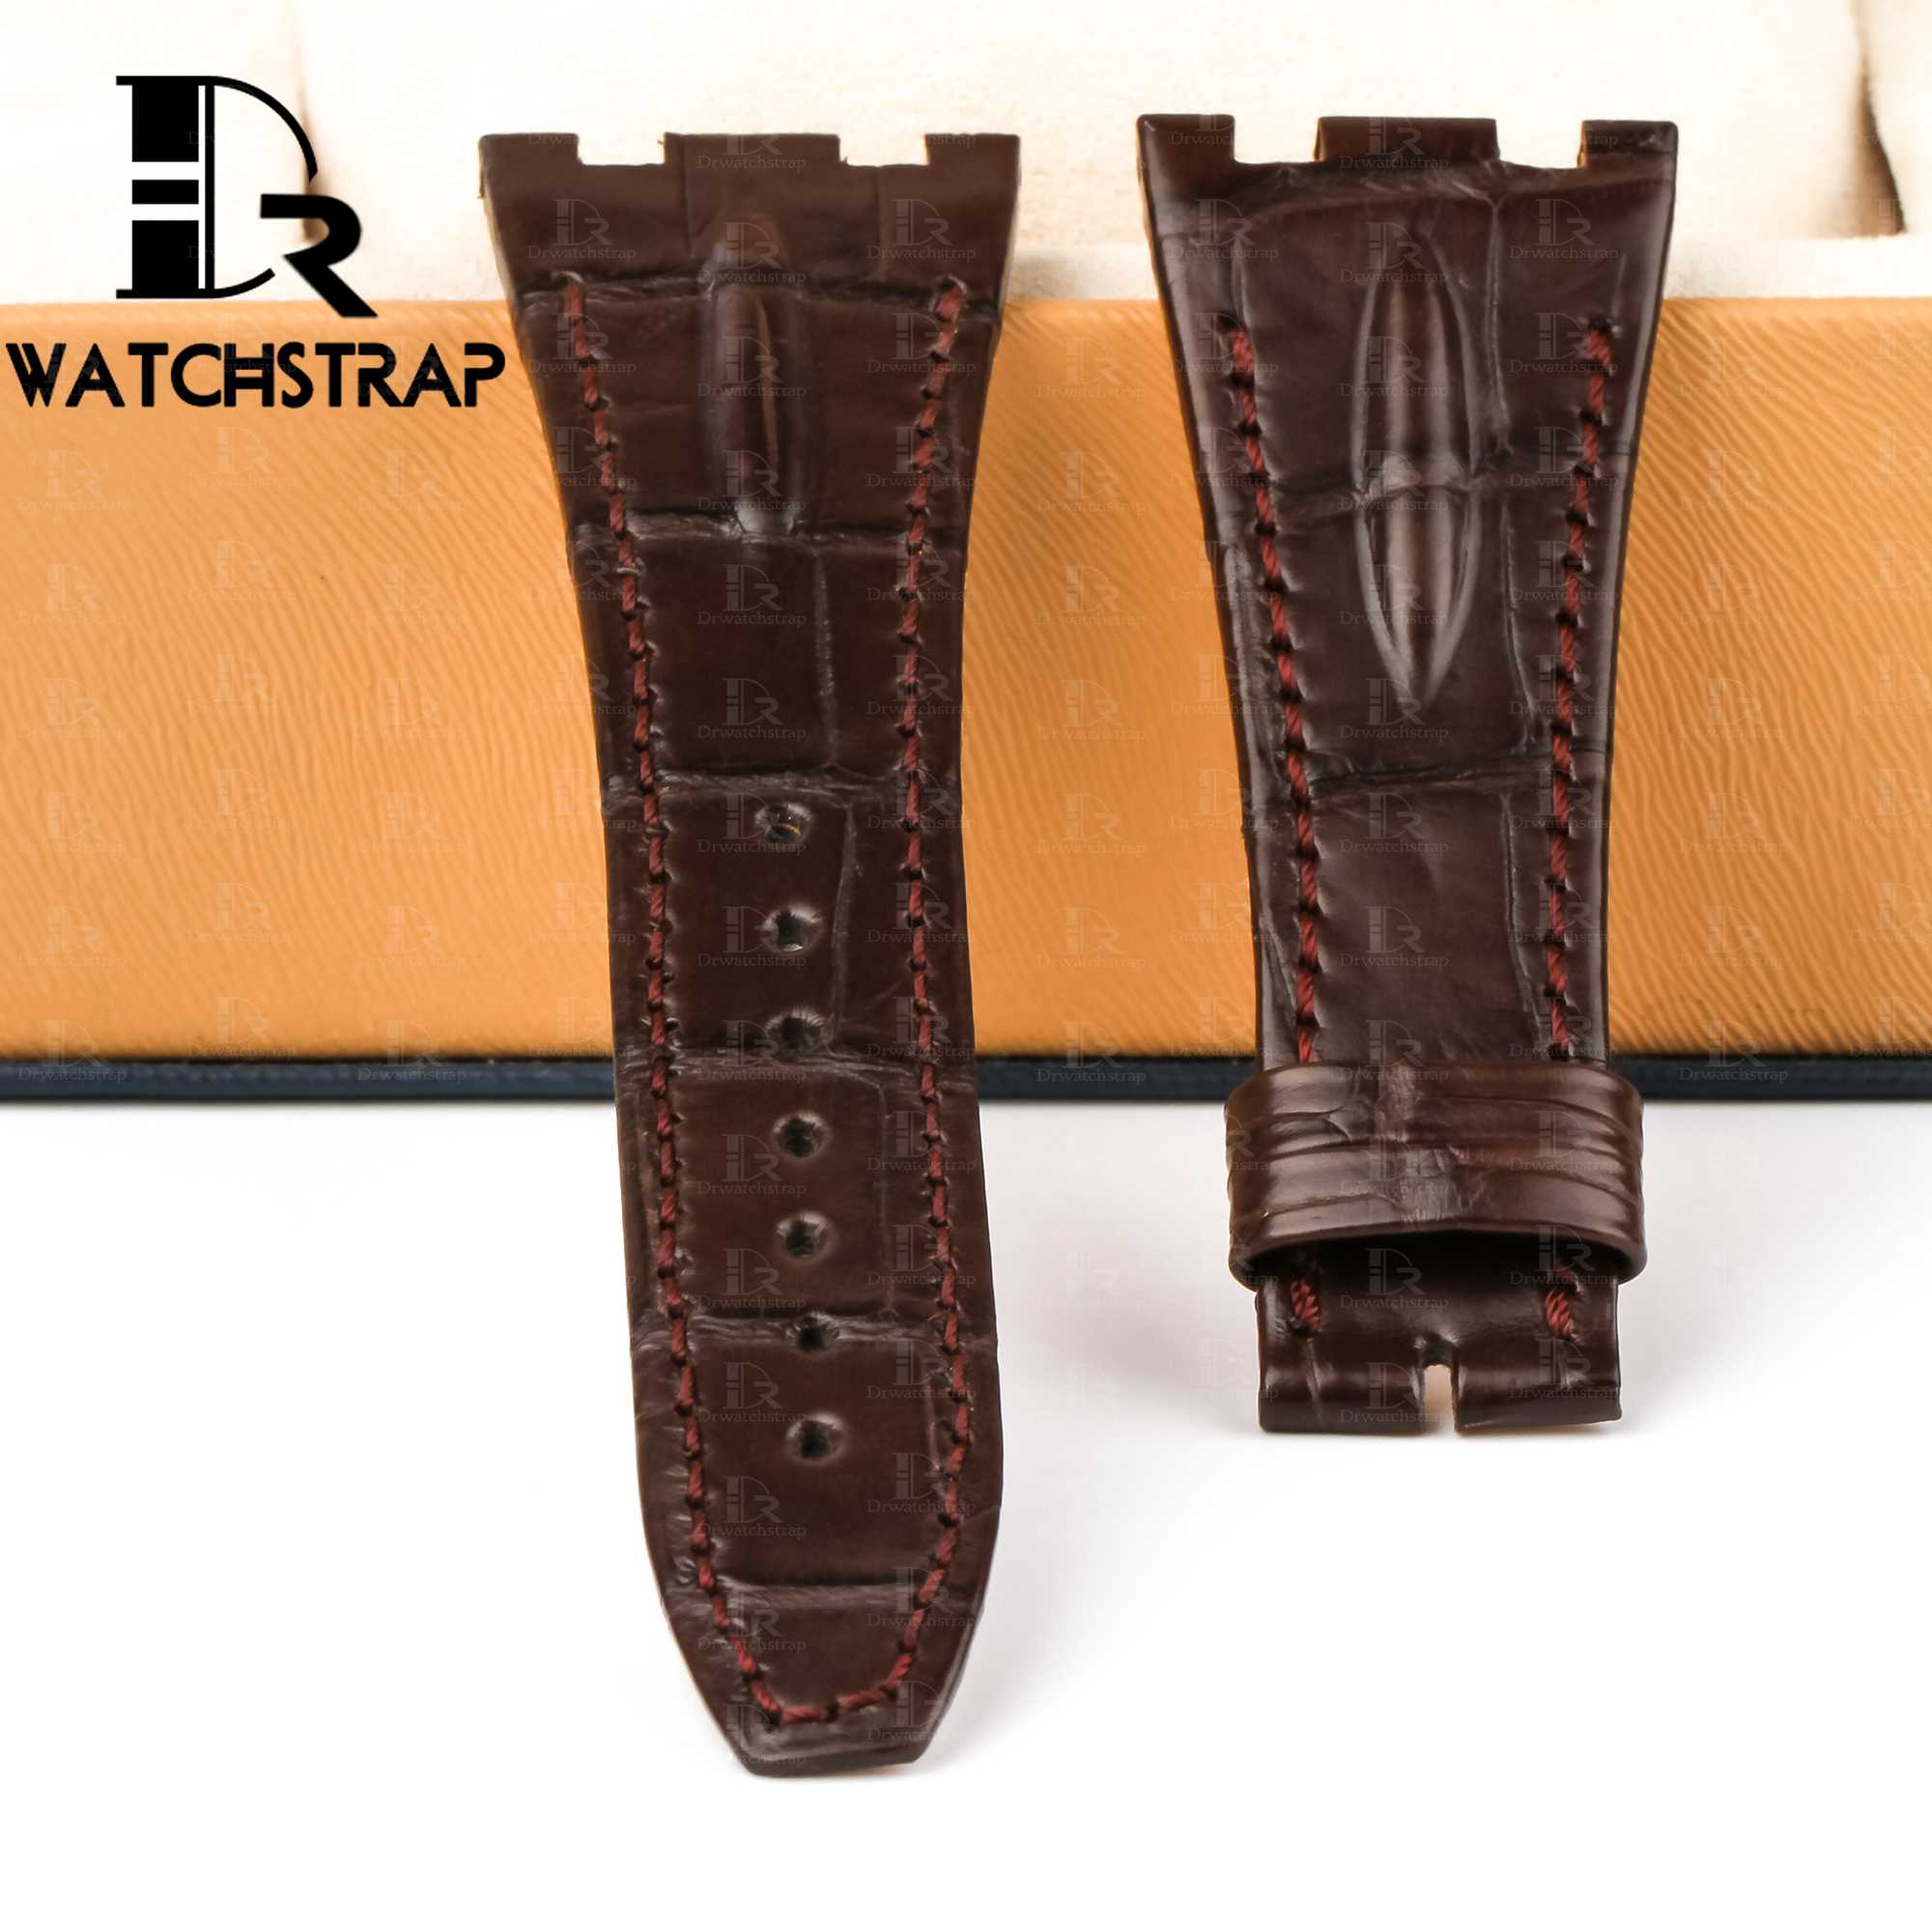 Replacement-brown-alligator-leather-watch-band-strap-bracelet-fit-for-the-Audemars-Piguet-Royal-Oak-Mens-Watch-42mm